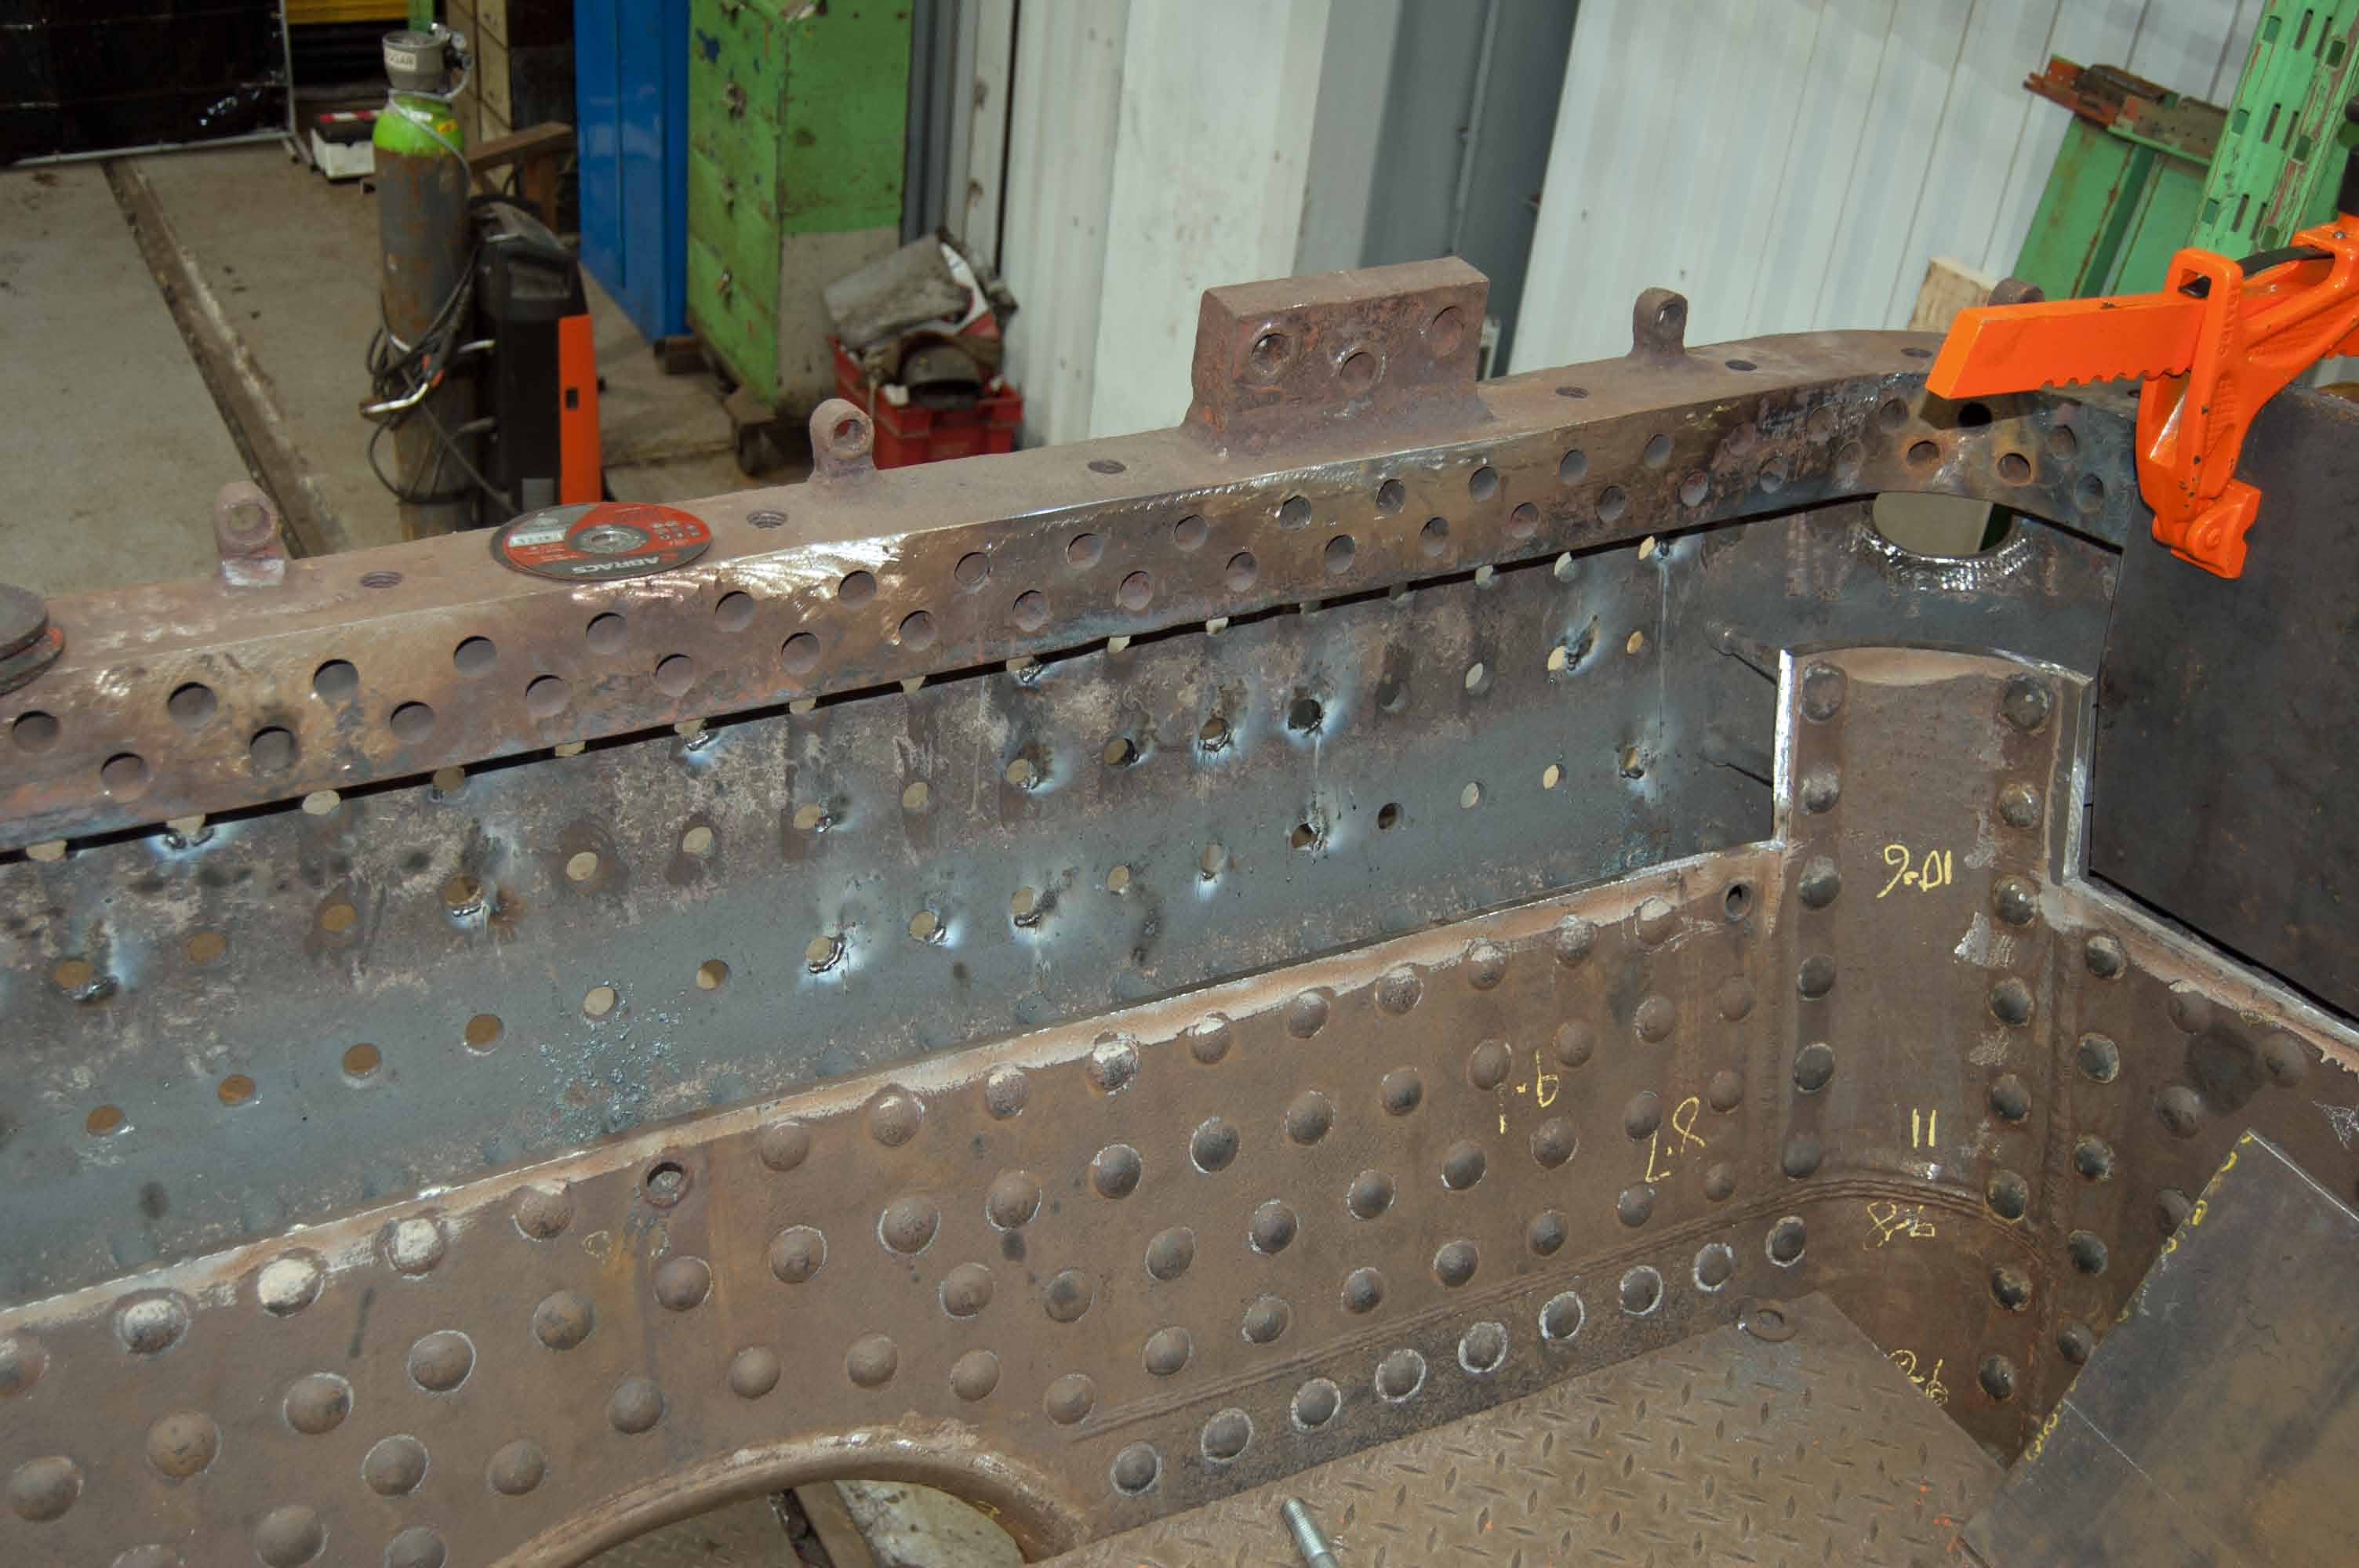 The rear part of lower inner firebox has been cut away, and is being prepared for the new platework to be welded in.